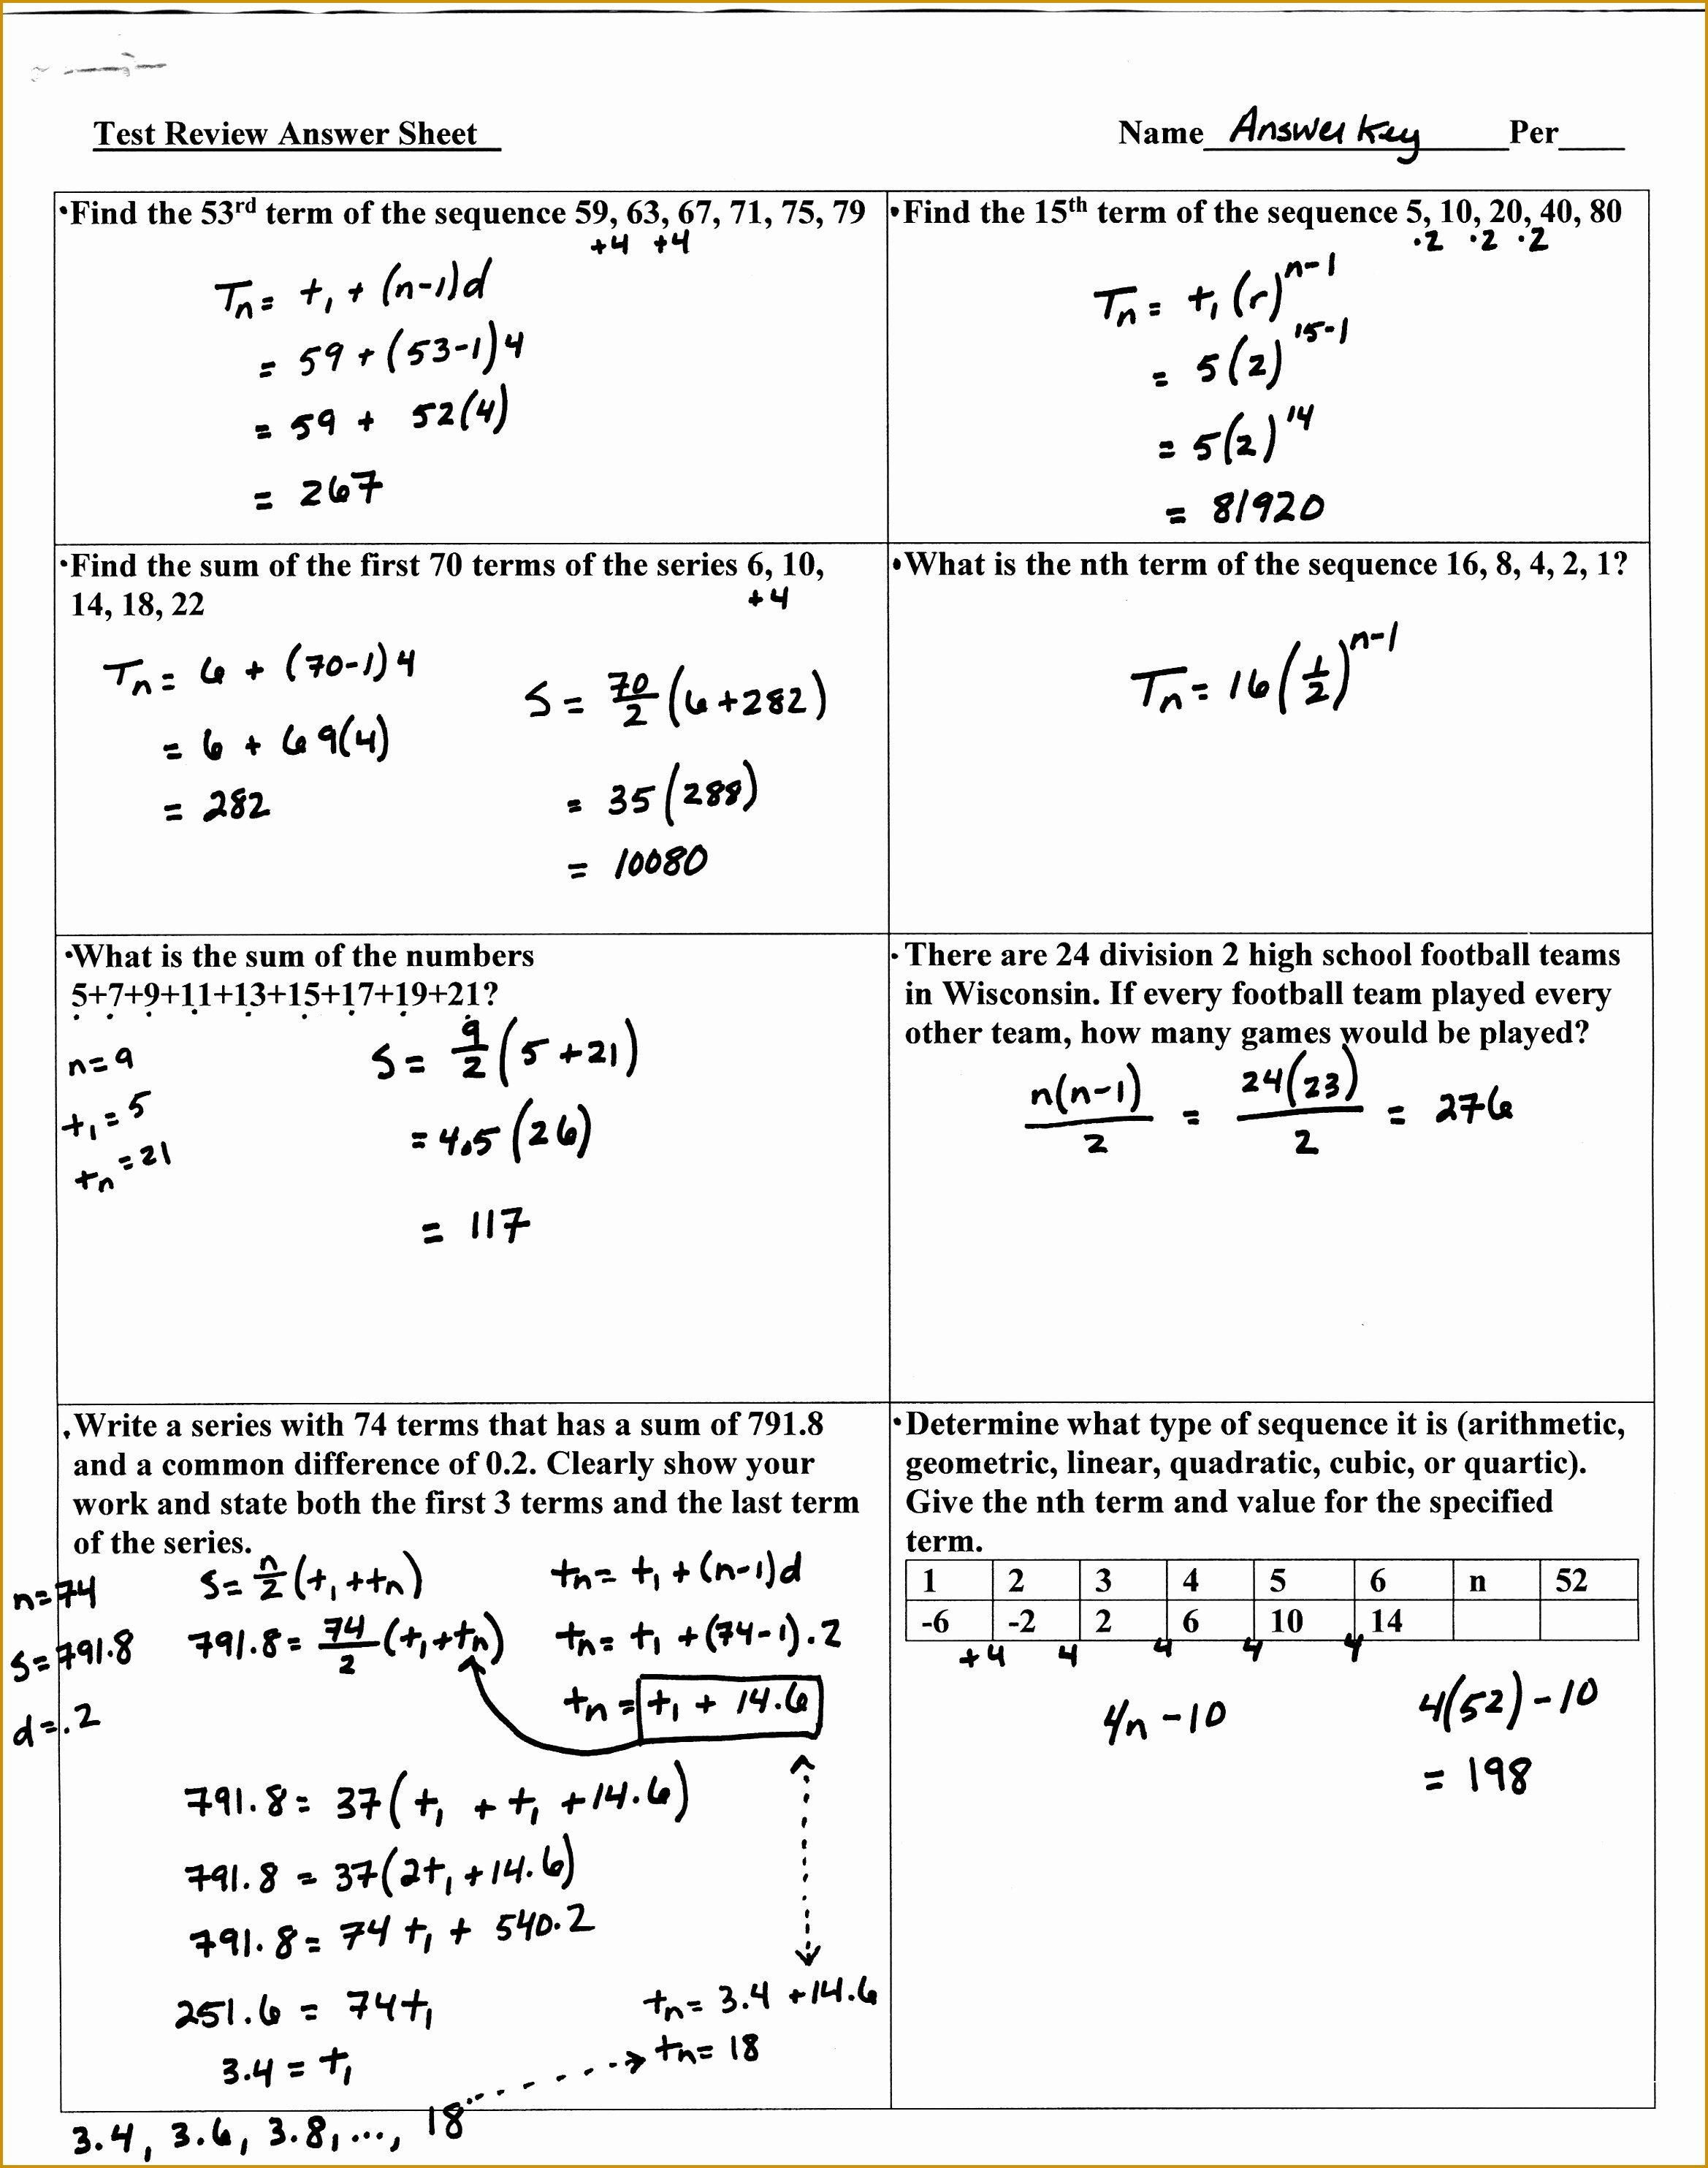 Function Notation Worksheet Answers Fresh 3 Algebra 1 Function Notation Worksheet